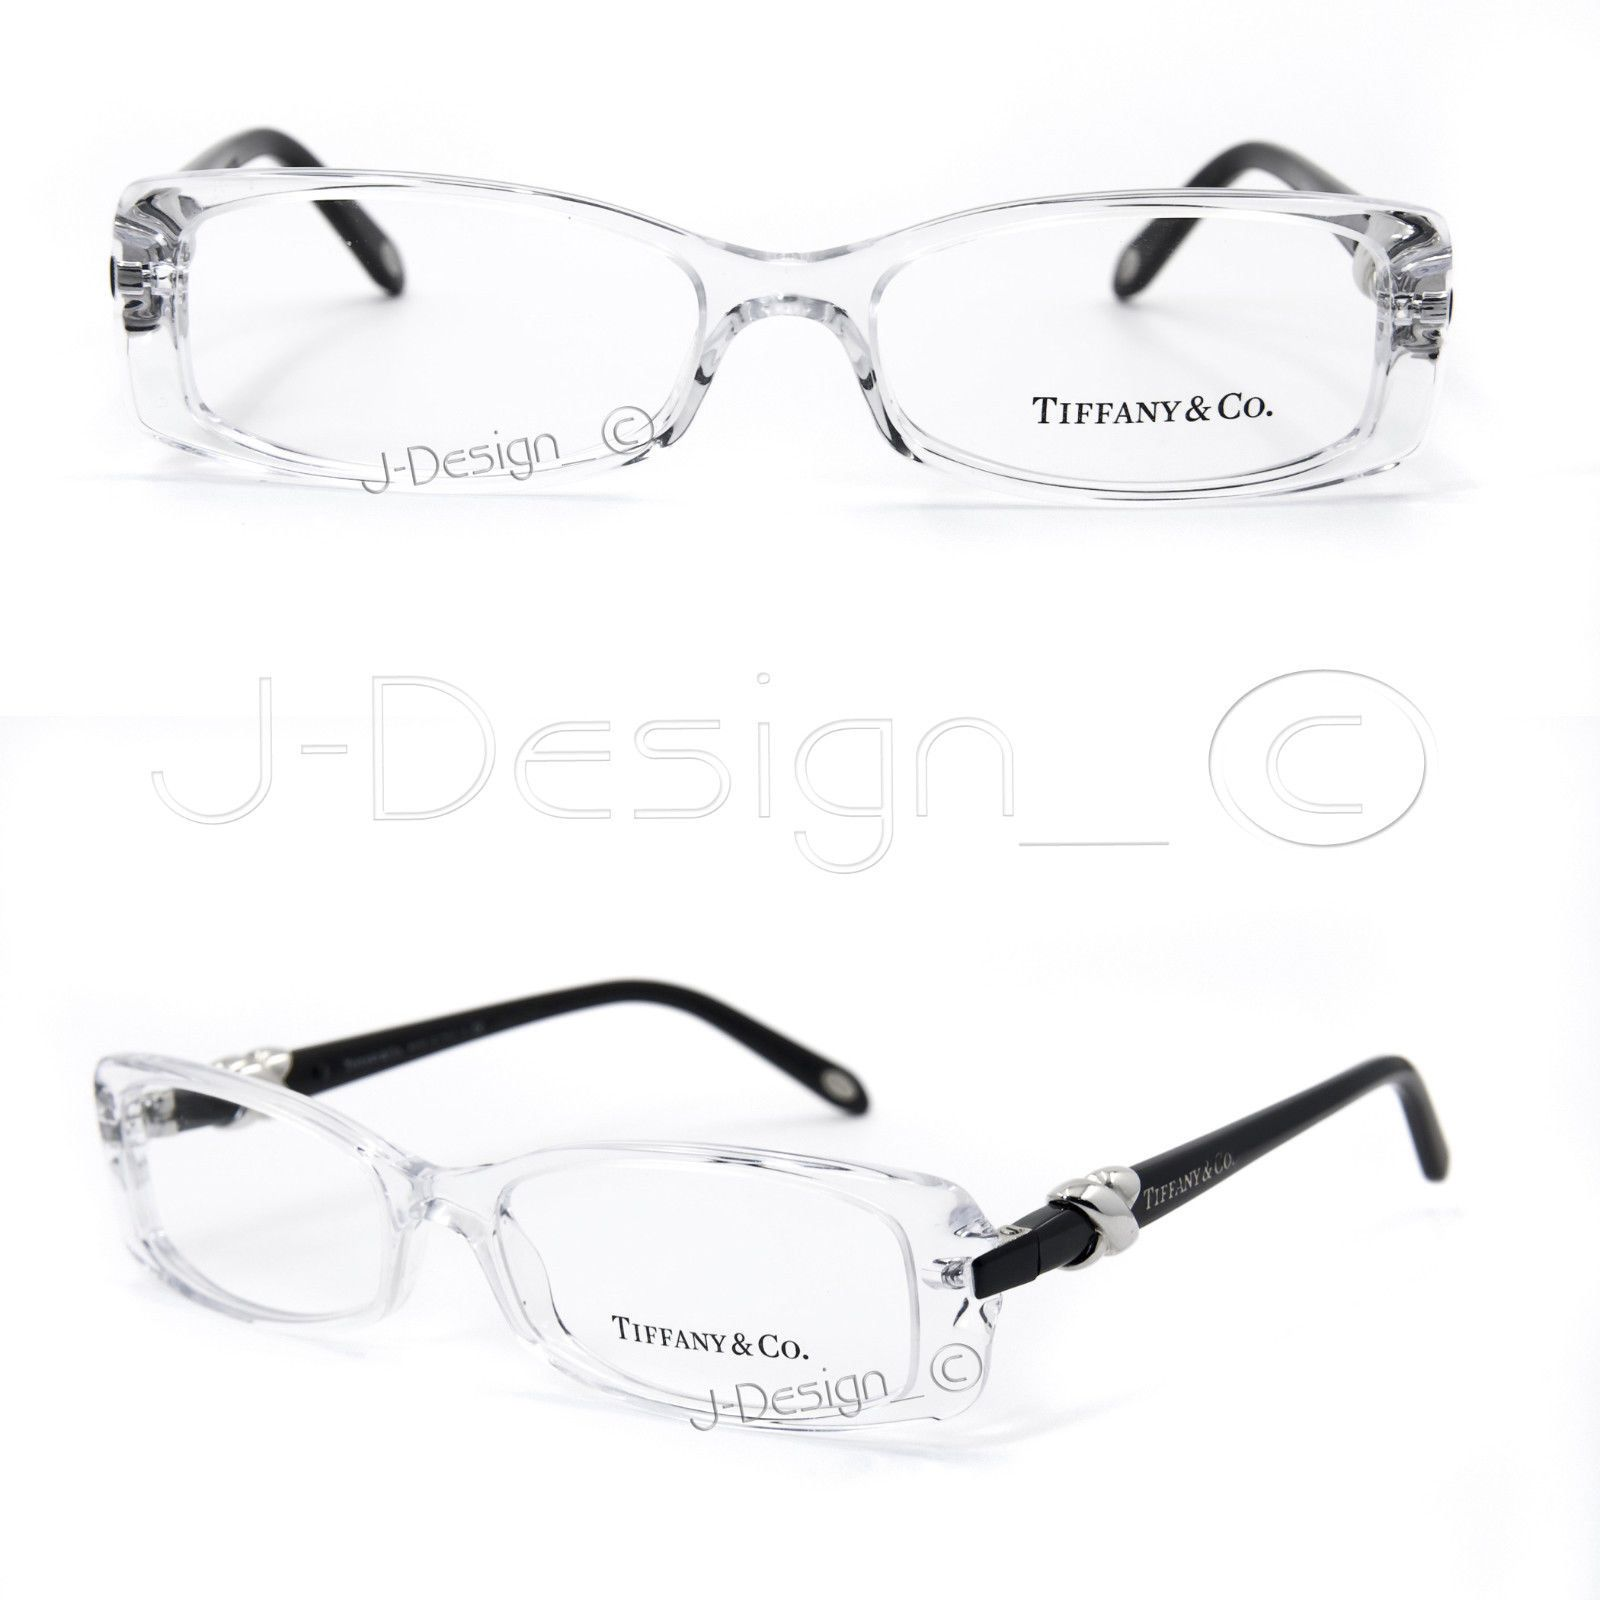 267b2270e202 Tiffany Co. Rx eyeglass frames - I must have these!